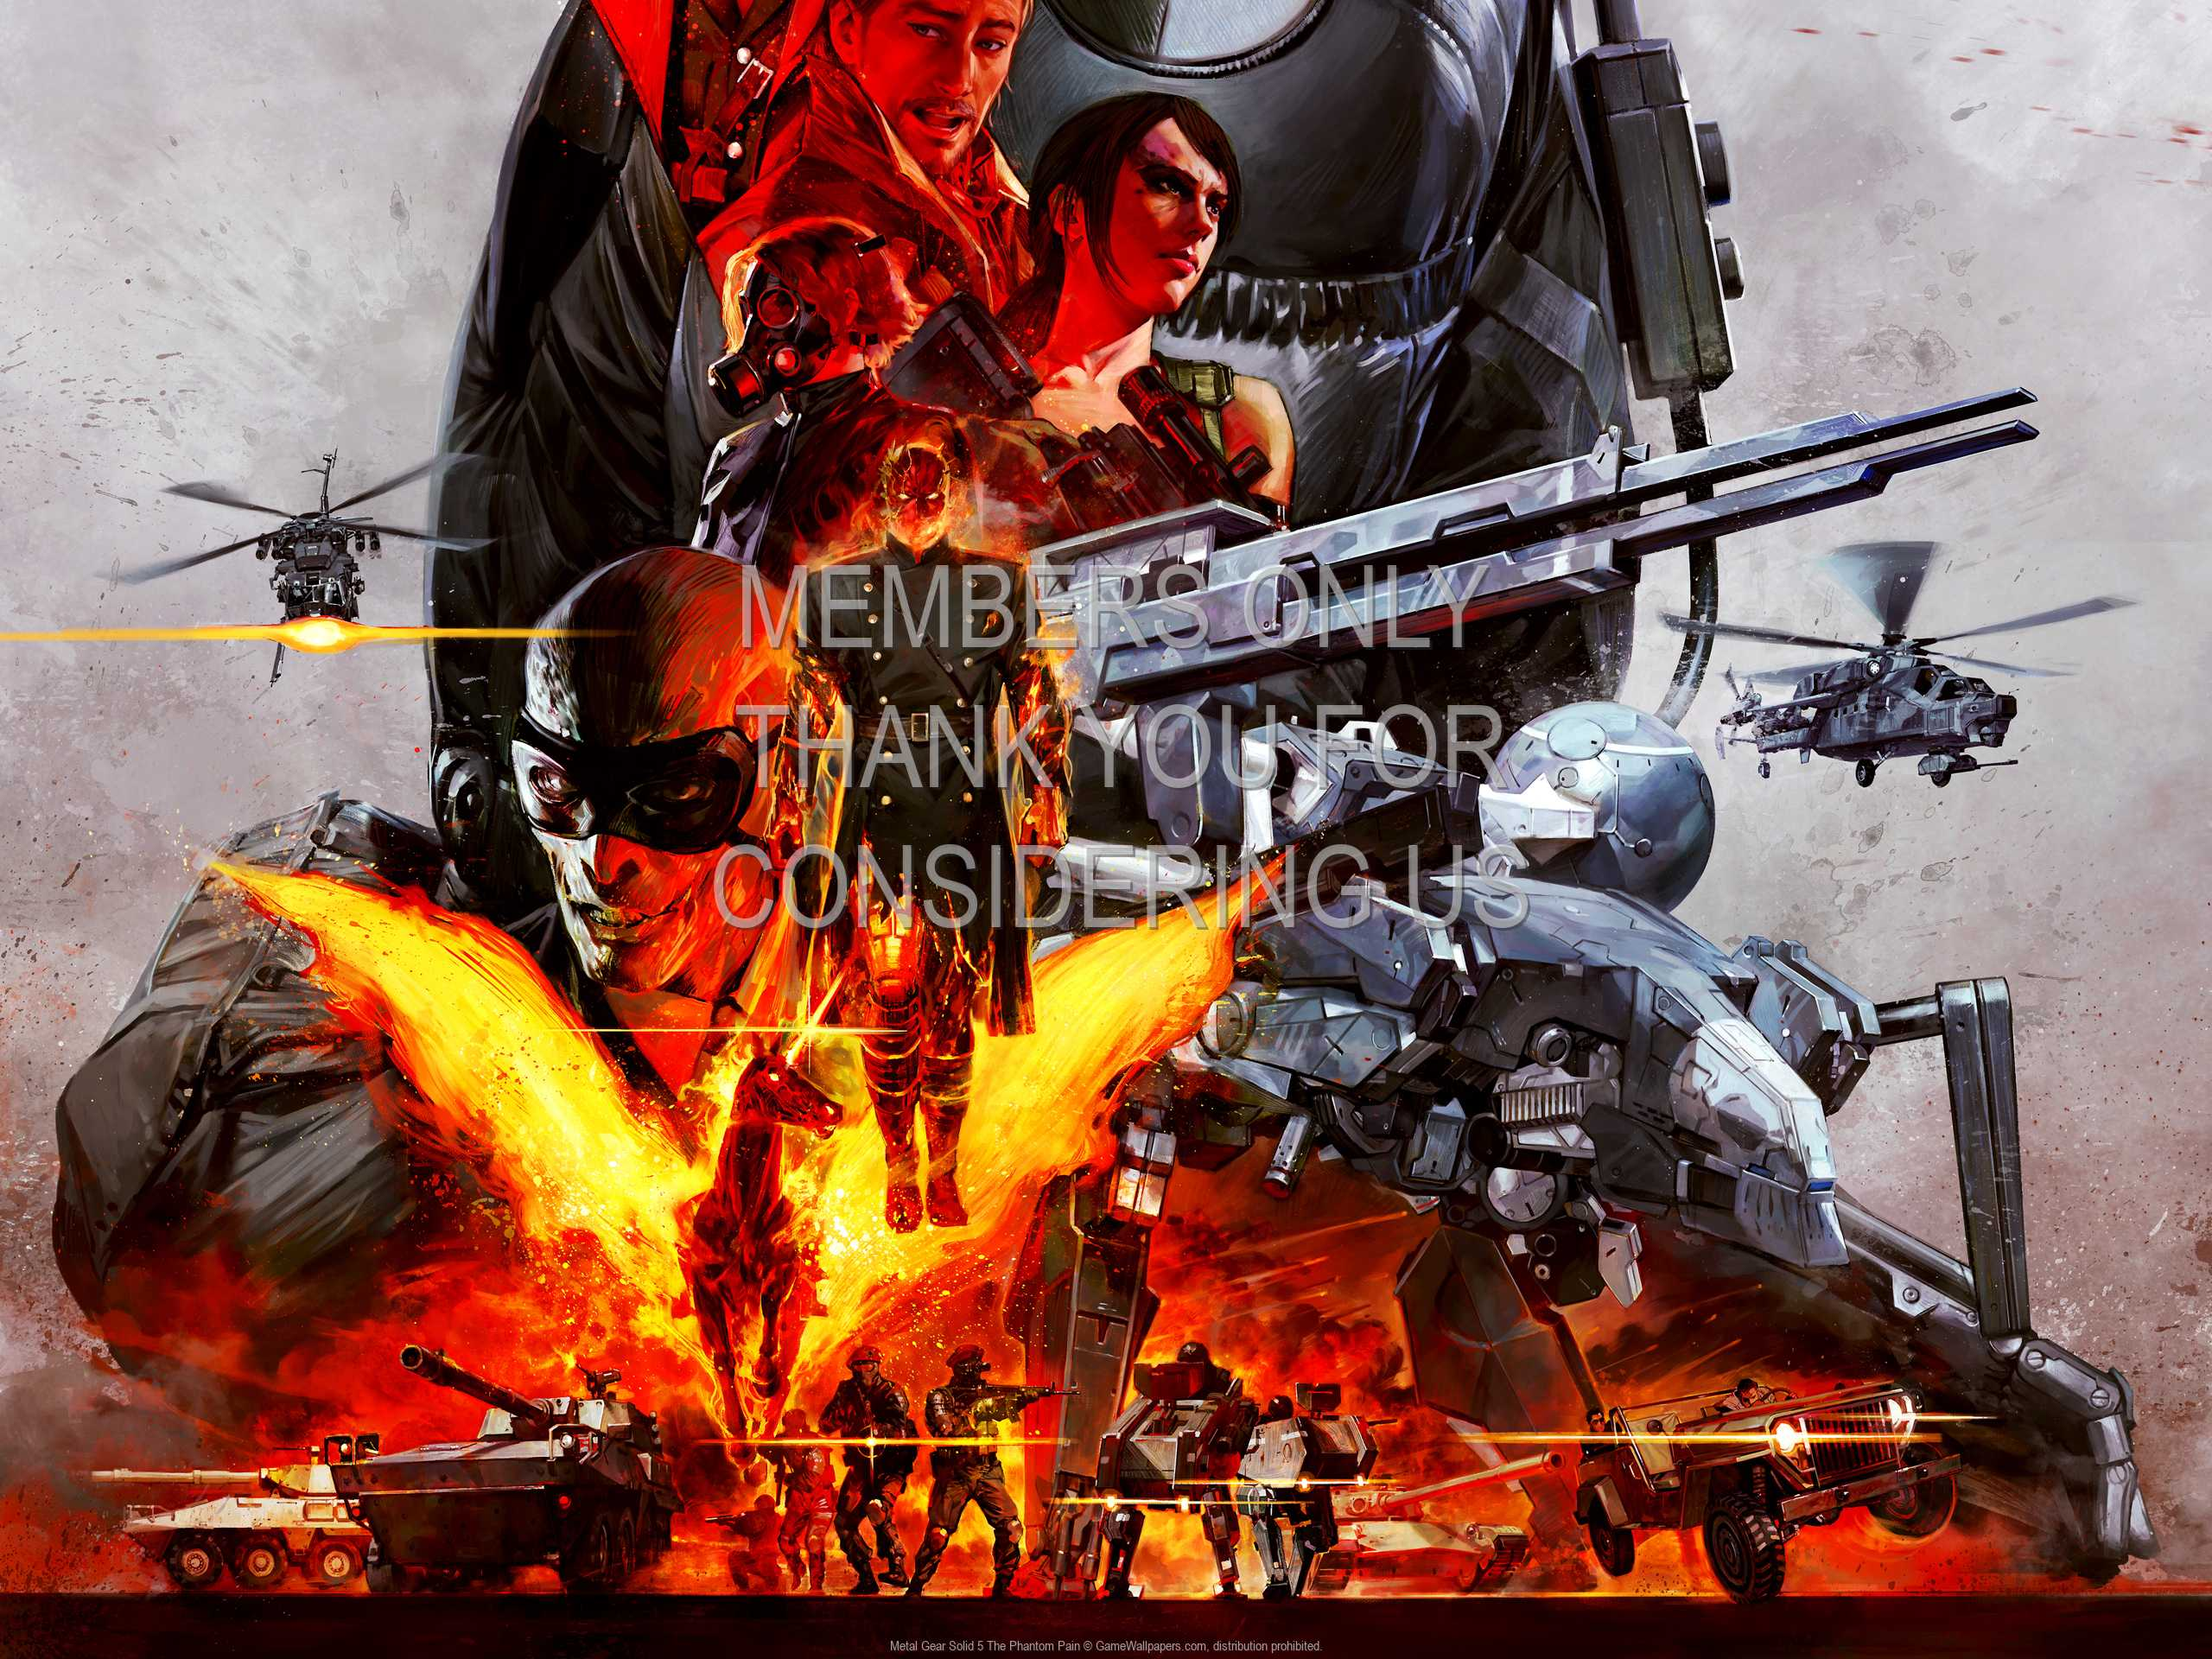 Metal Gear Solid 5: The Phantom Pain 1080p Horizontal Mobile wallpaper or background 02